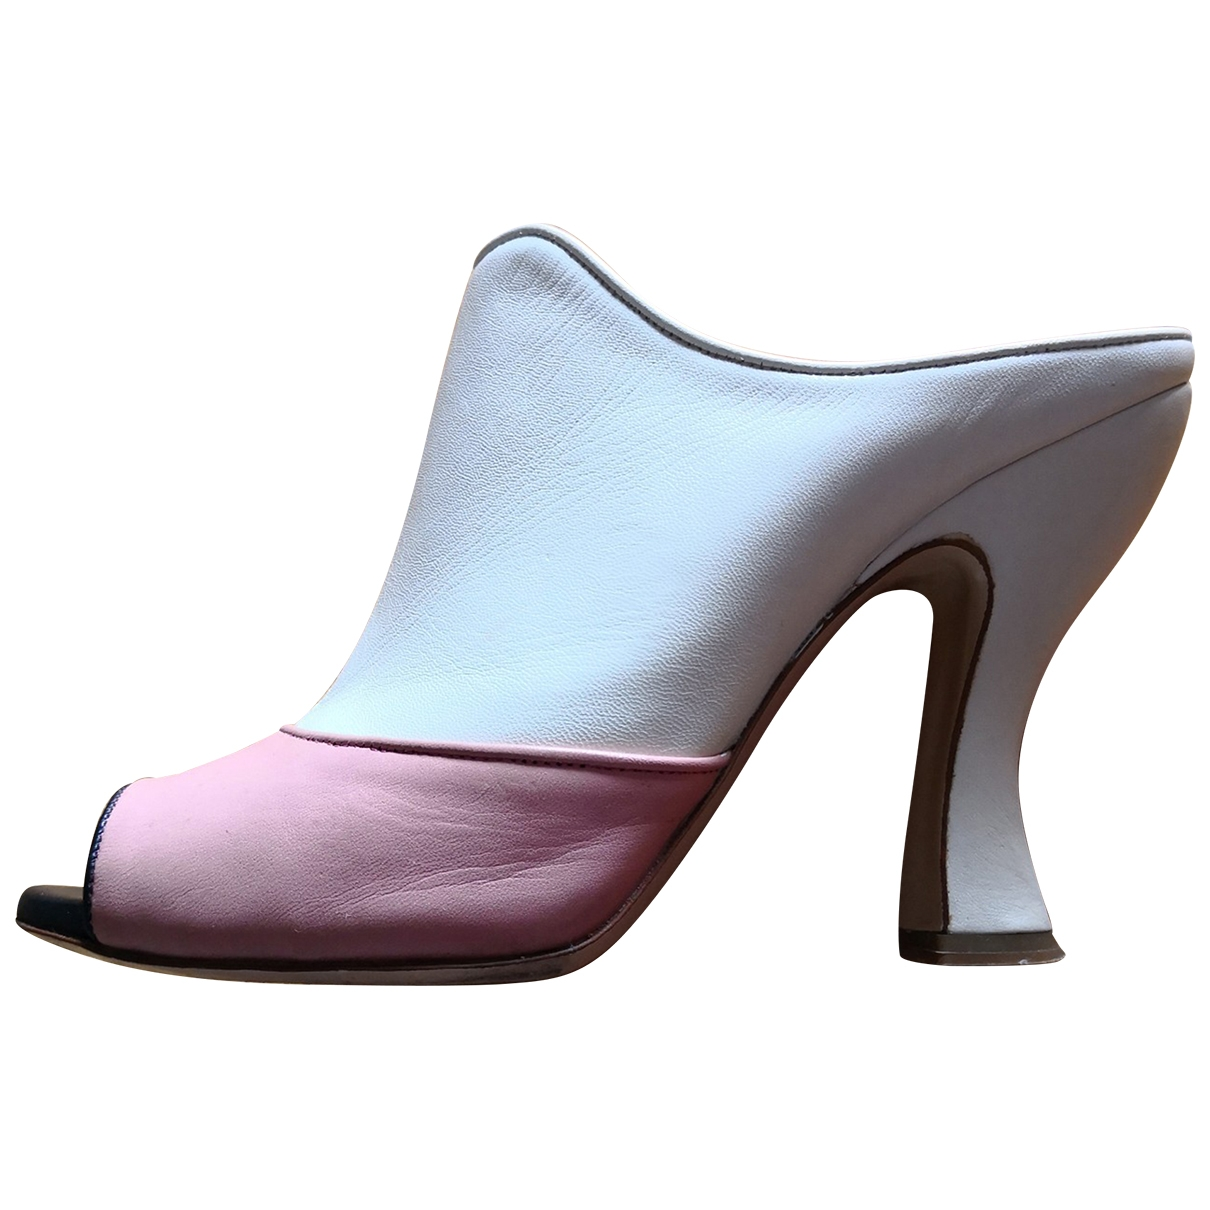 Miu Miu \N Pumps in  Bunt Leder